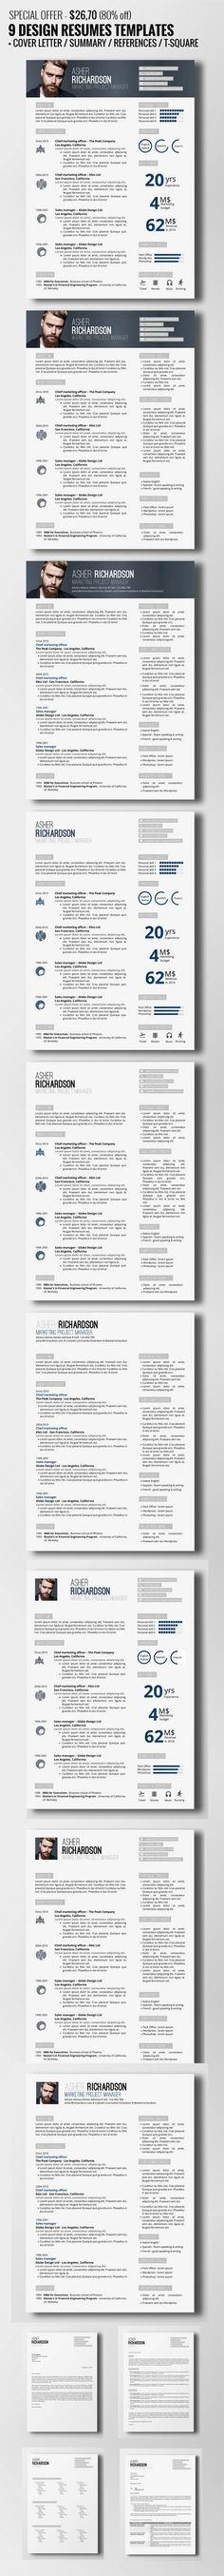 435 best Resume images on Pinterest Resume design, Design resume - cv cover letter